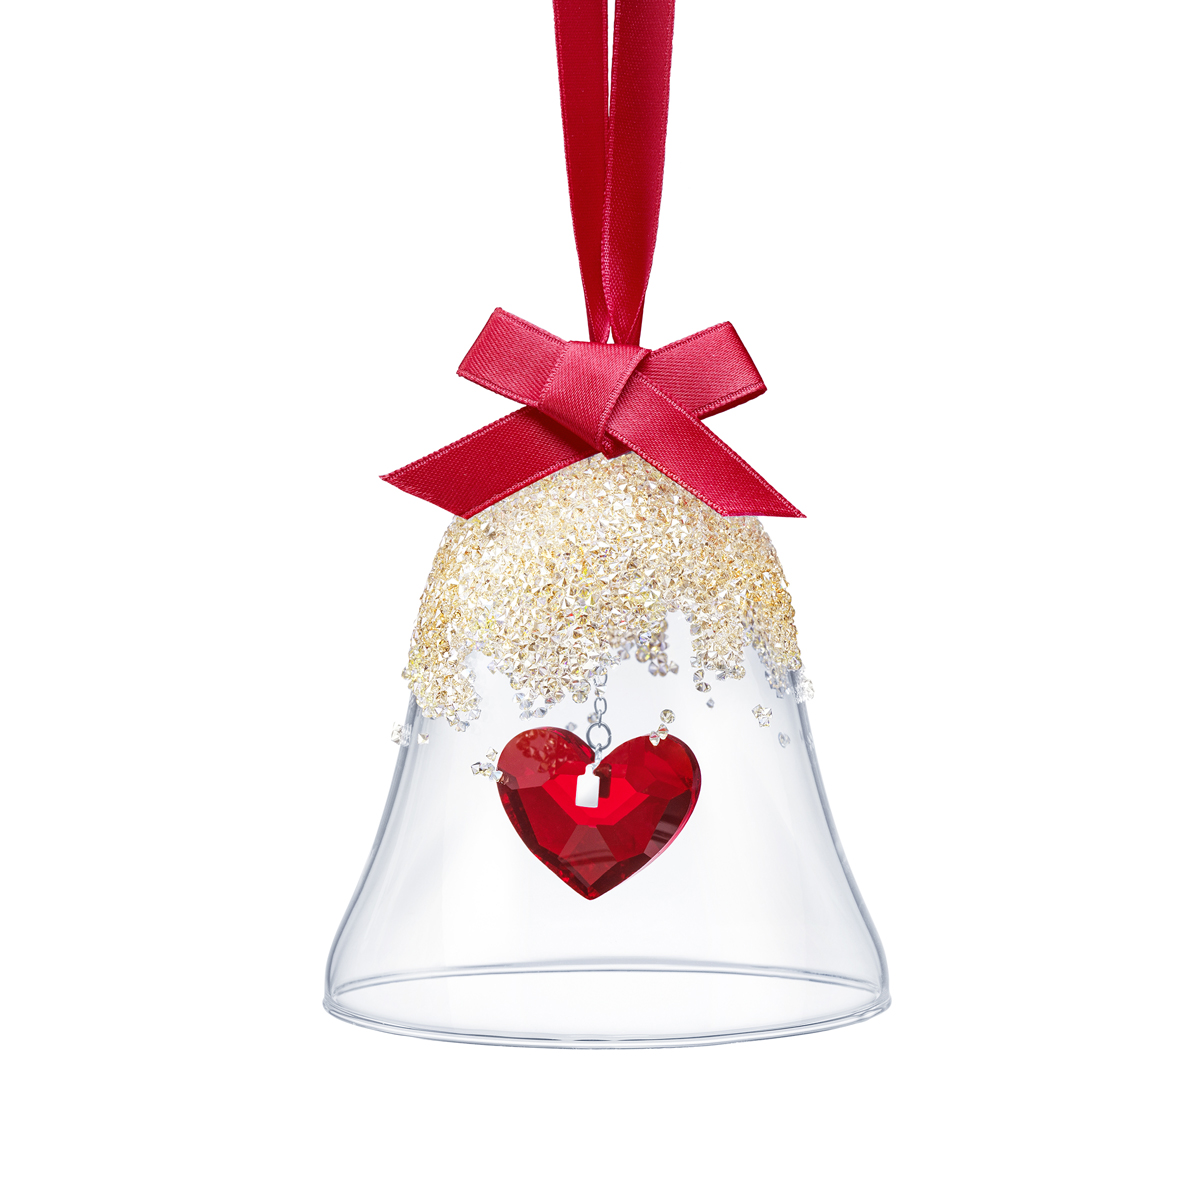 Swarovski Christmas Bell Ornament, Heart